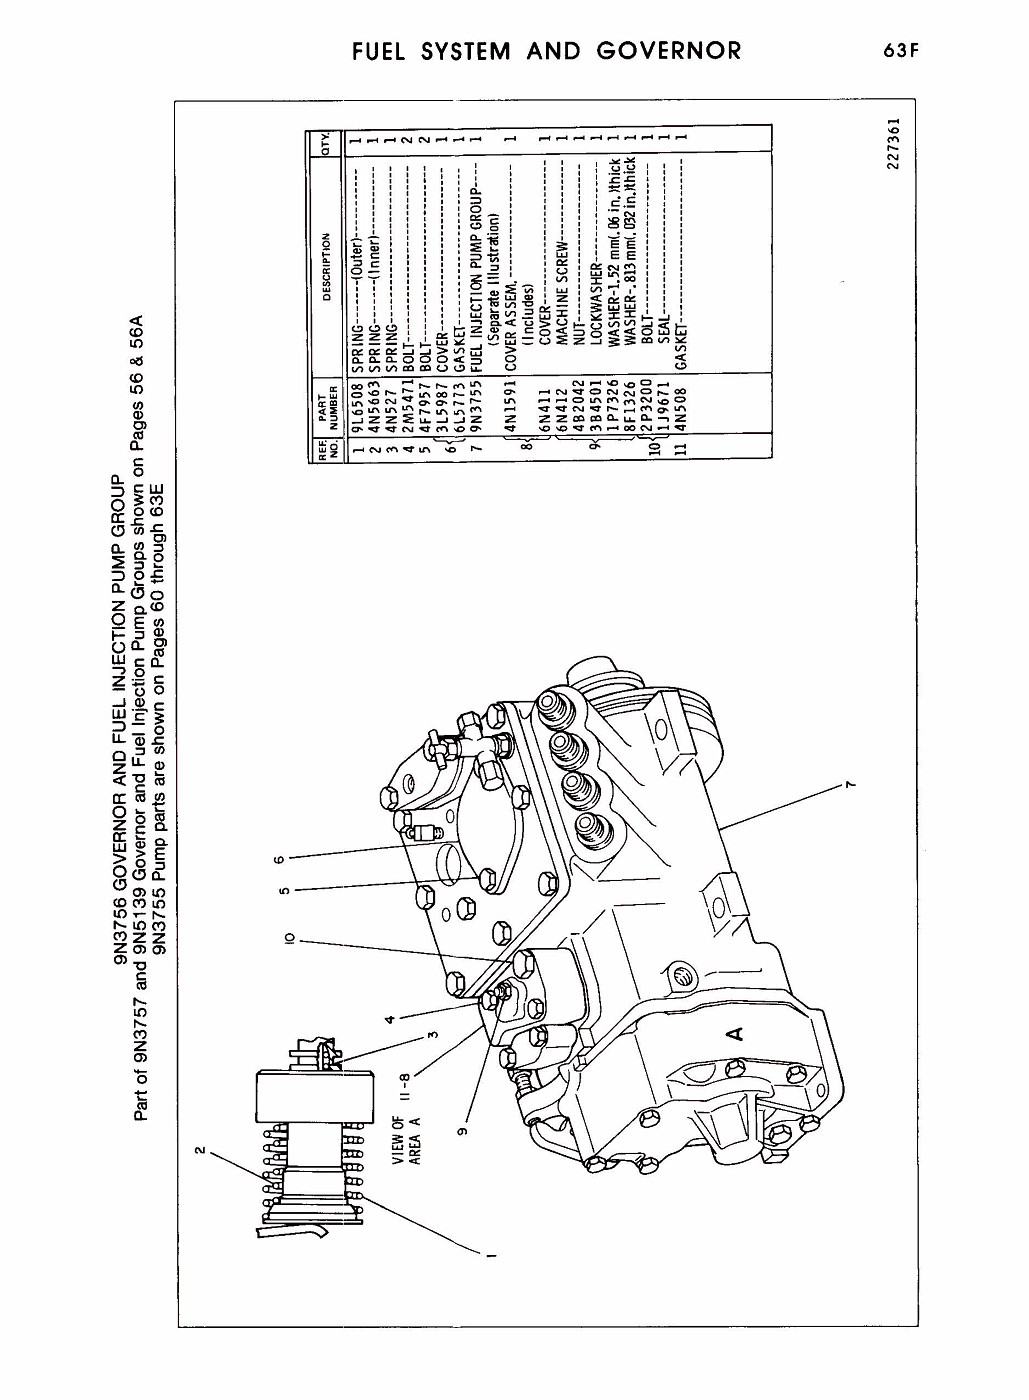 Photo 3208 Parts Manual Pagina 129 Cat Dieselengine Fuel Injector Diagram Album Modeltrucks25 Fotkicom And Video Sharing Made Easy